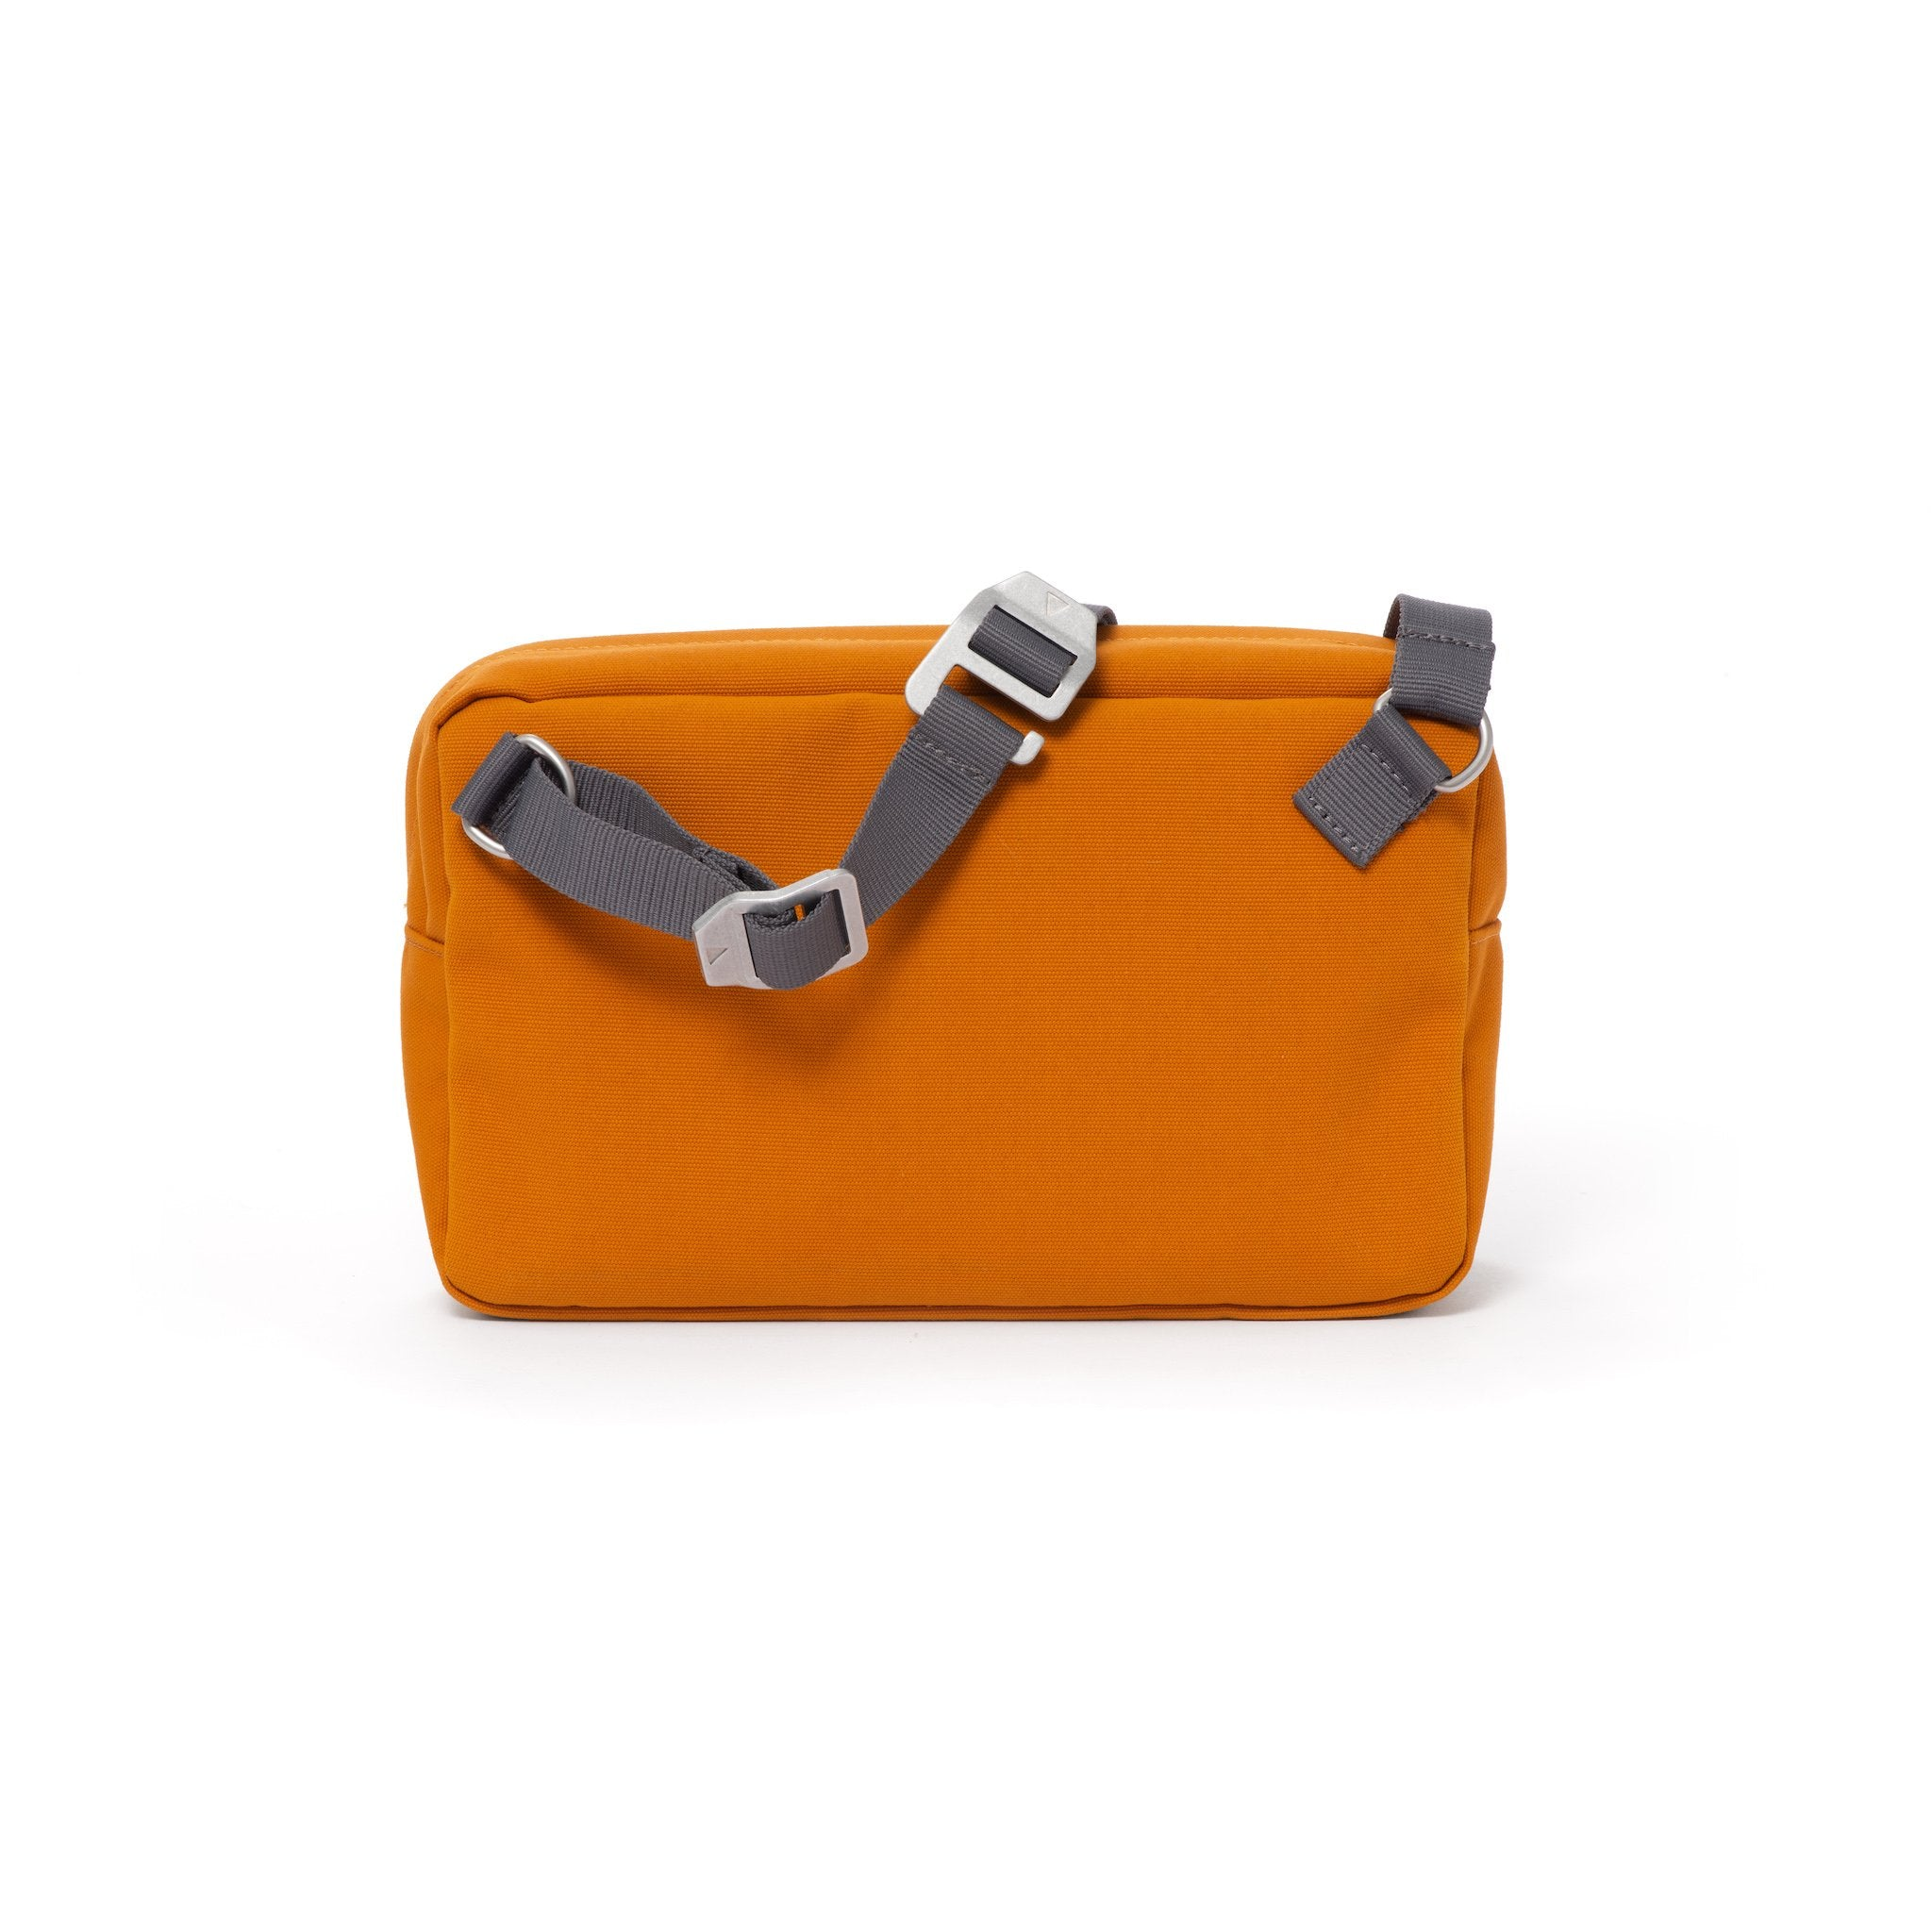 Orange shoulder bag with webbing strap and aluminium buckles.